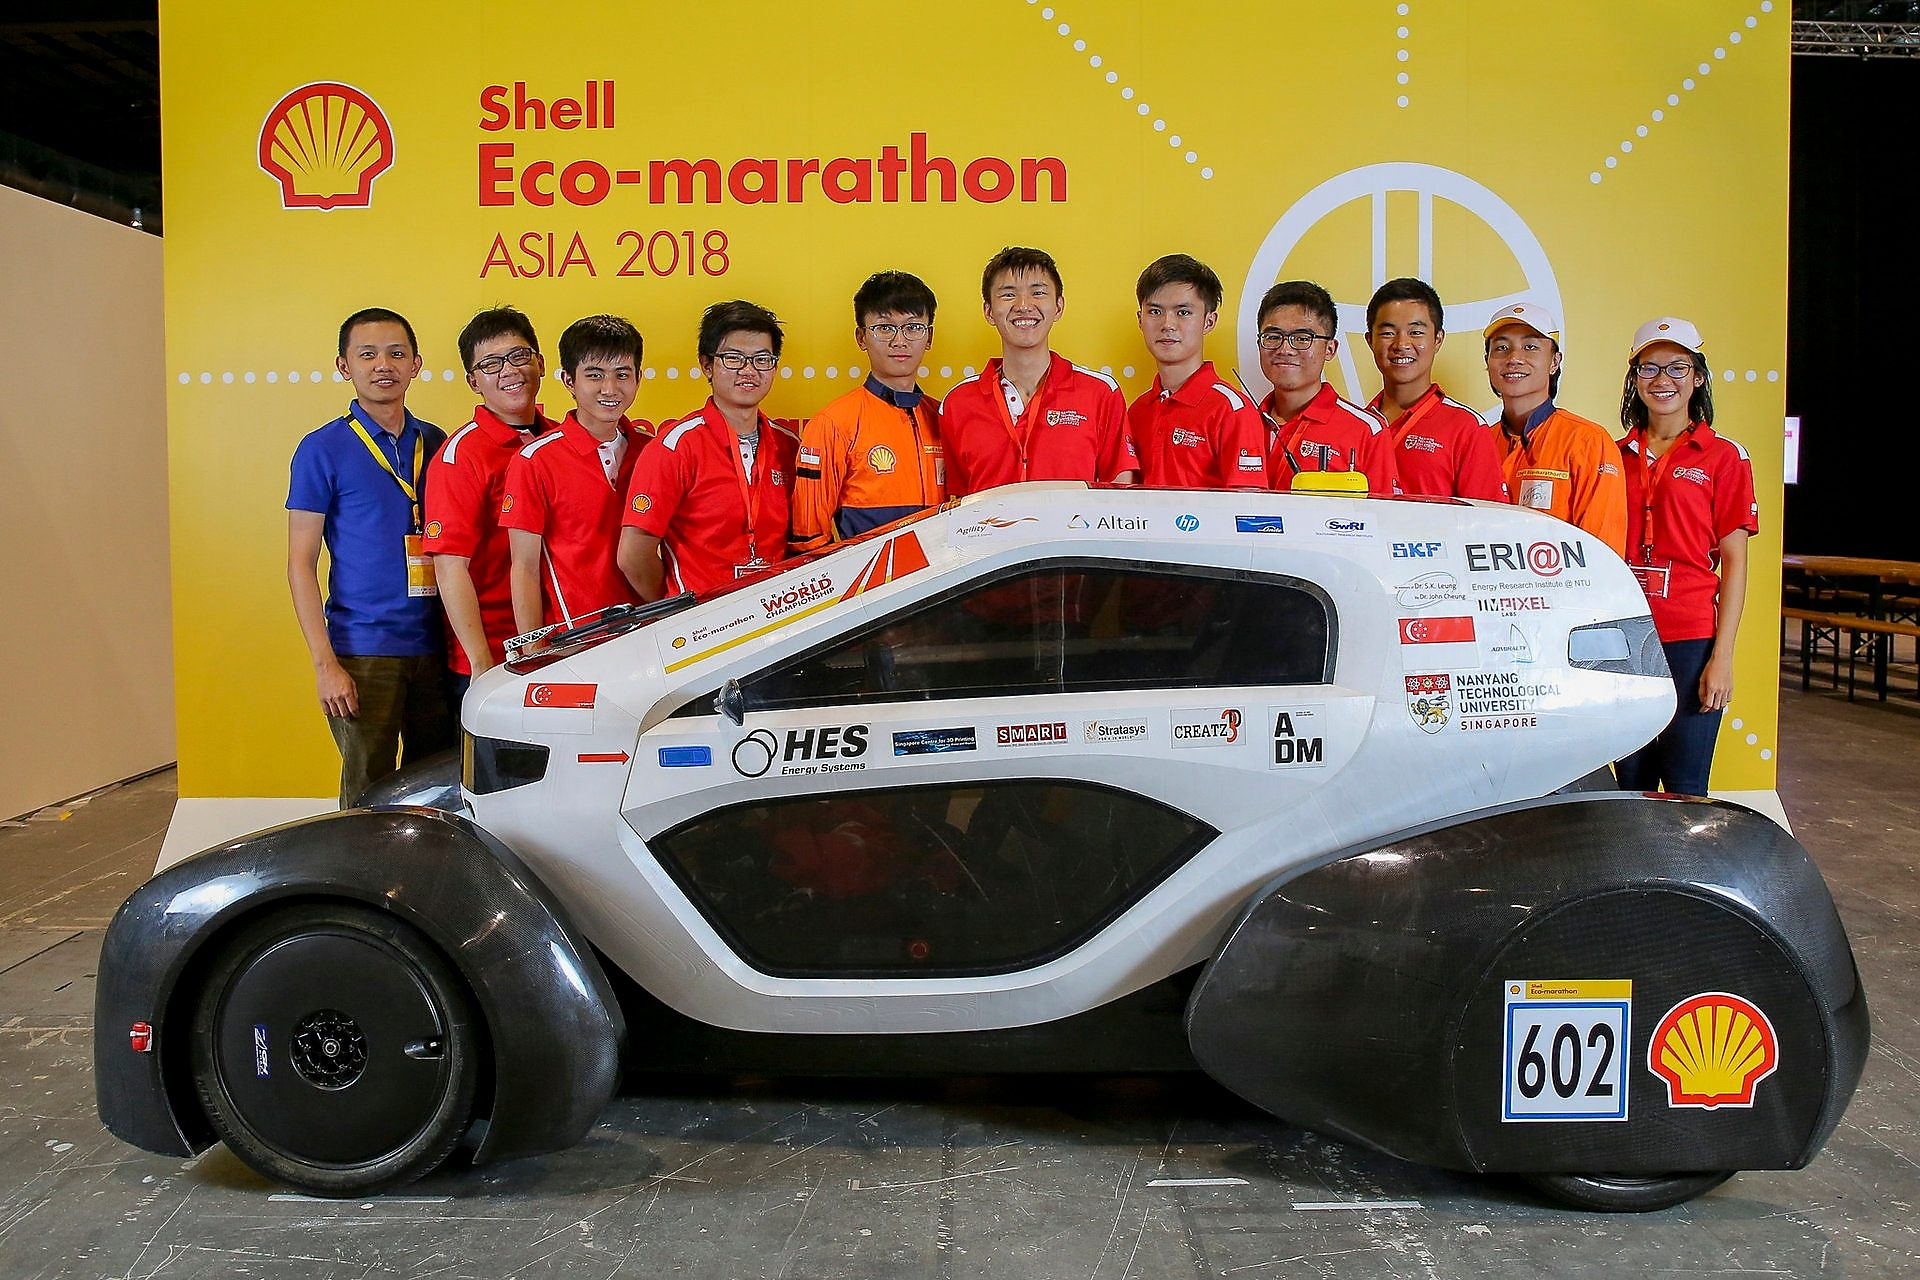 NTU Singapore 3D-Printed Car emerged champion in the UrbanConcept – Hydrogen category at Shell Eco-marathon Asia 2018 and will compete in the Drivers' World Championship Asia regional final on Sunday.